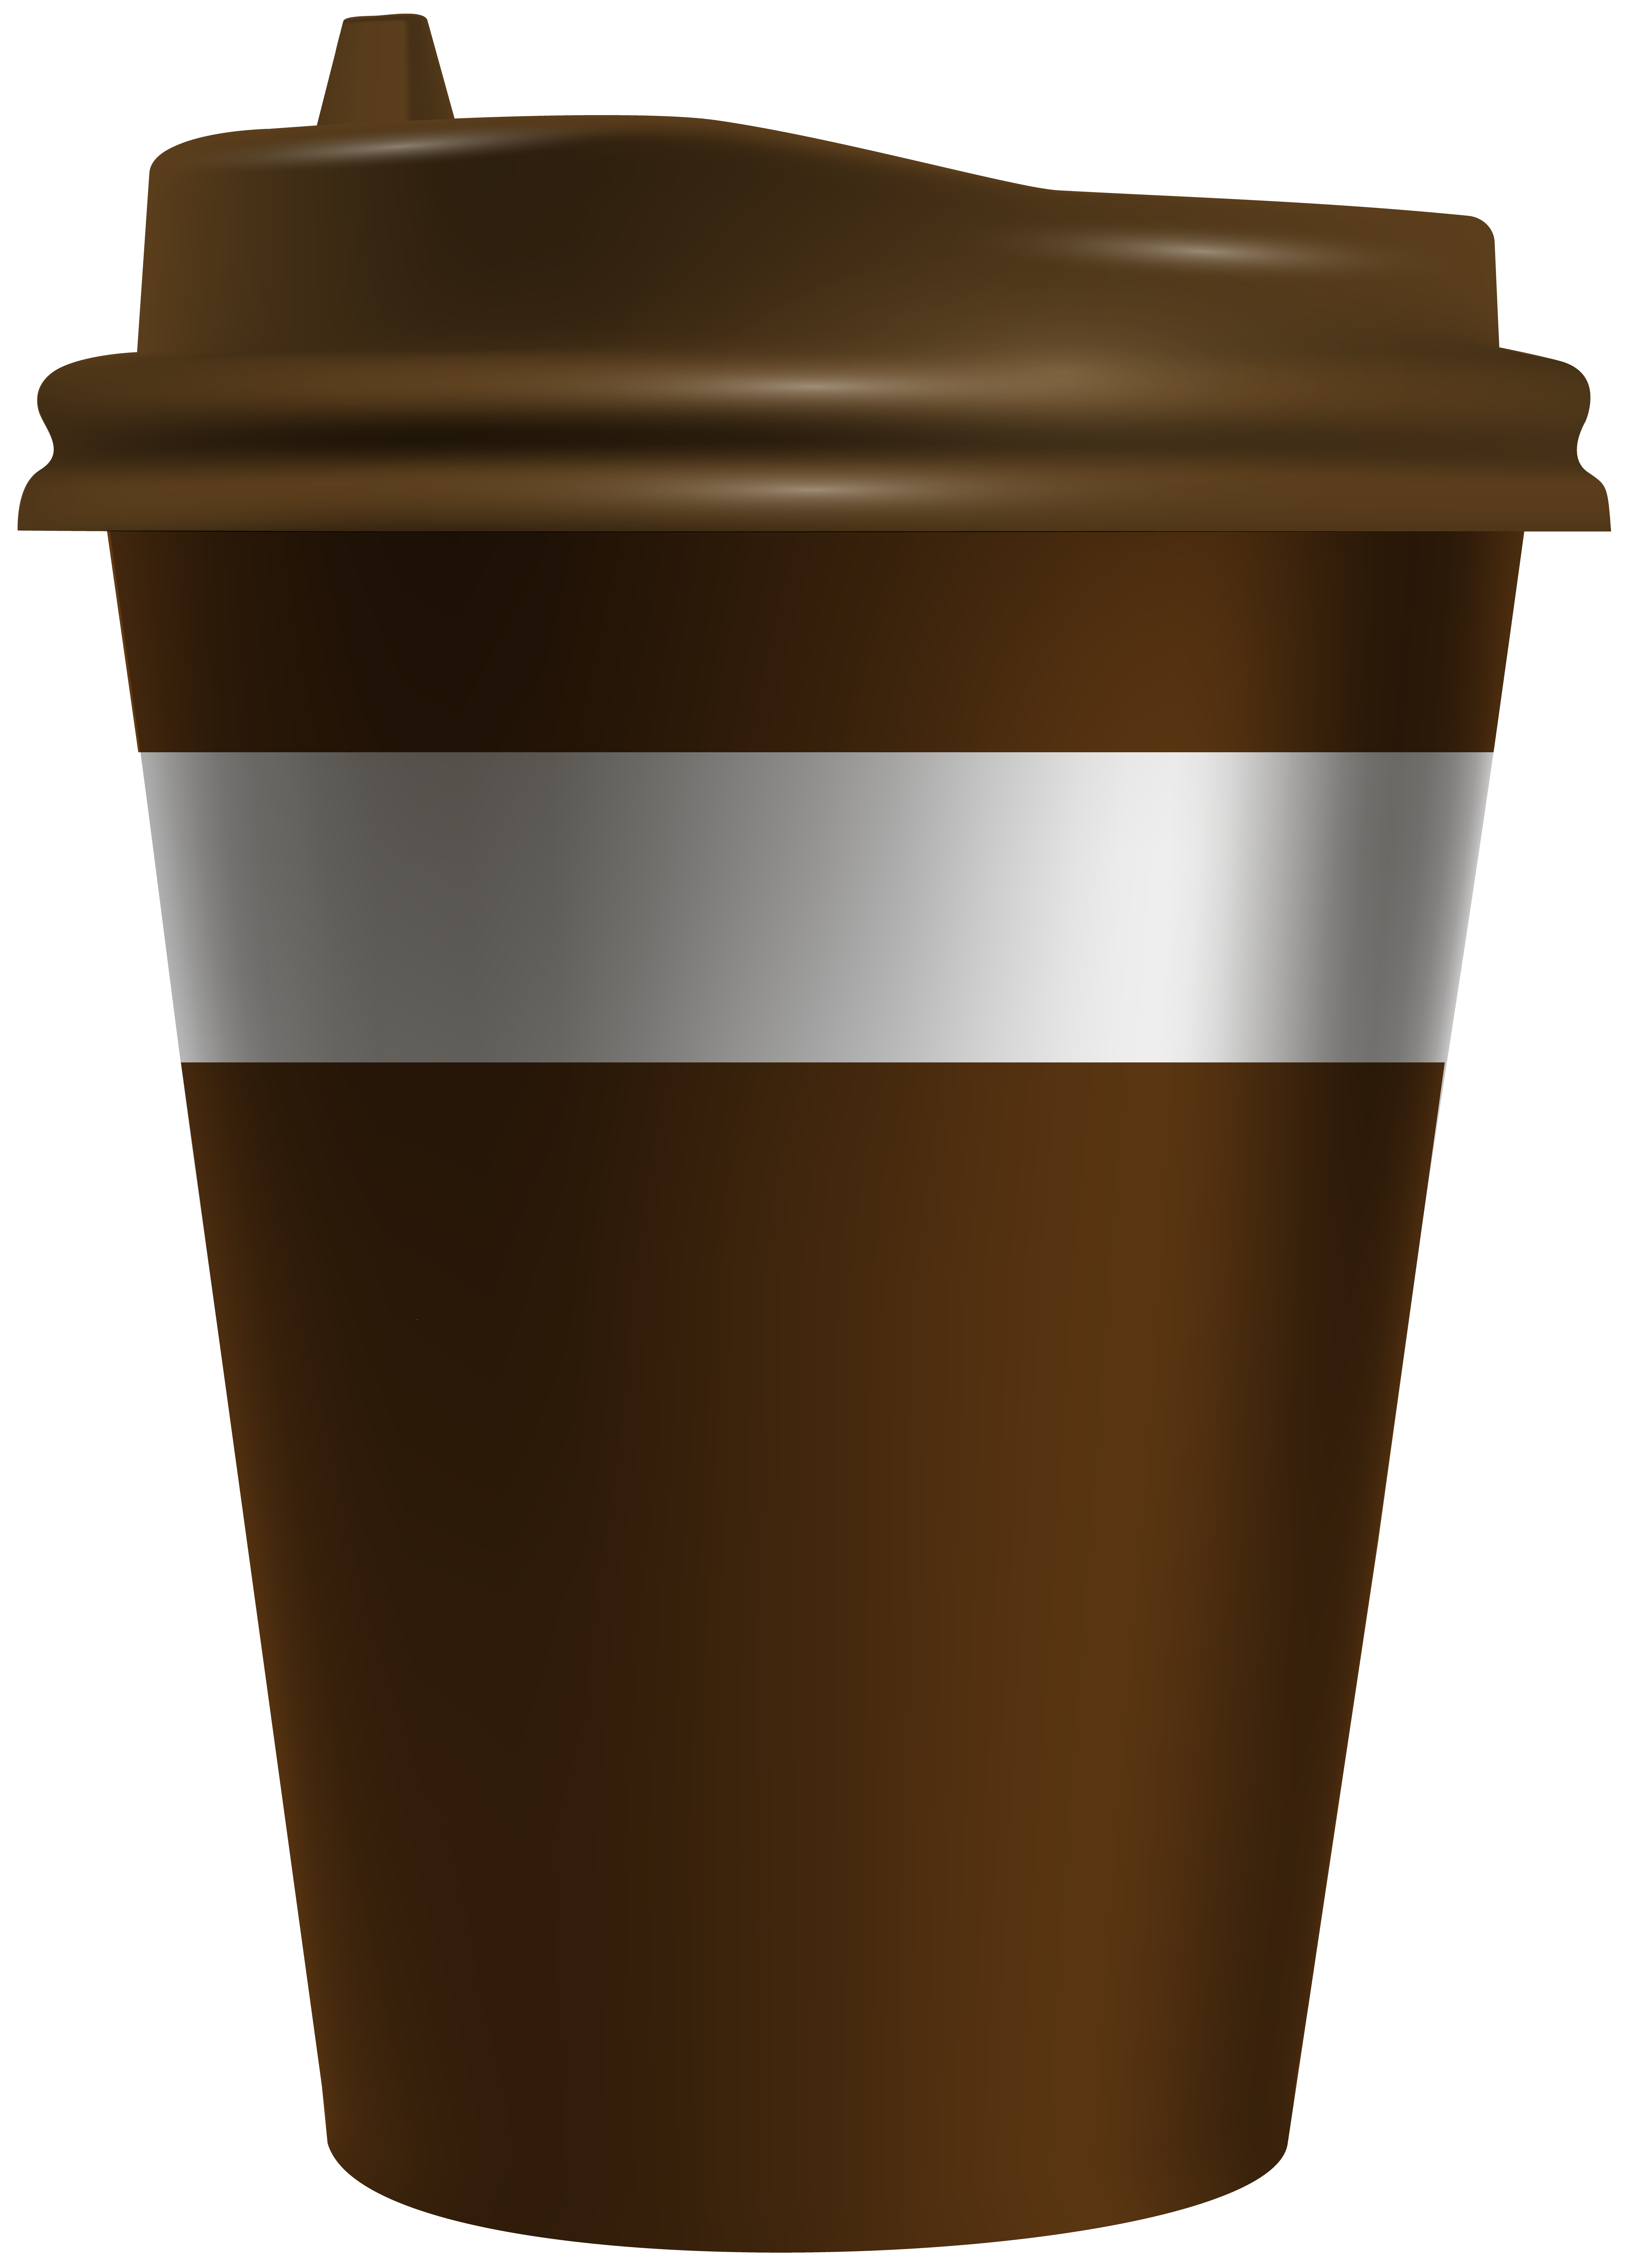 Coffee Cup To Go PNG Clip Art Image.